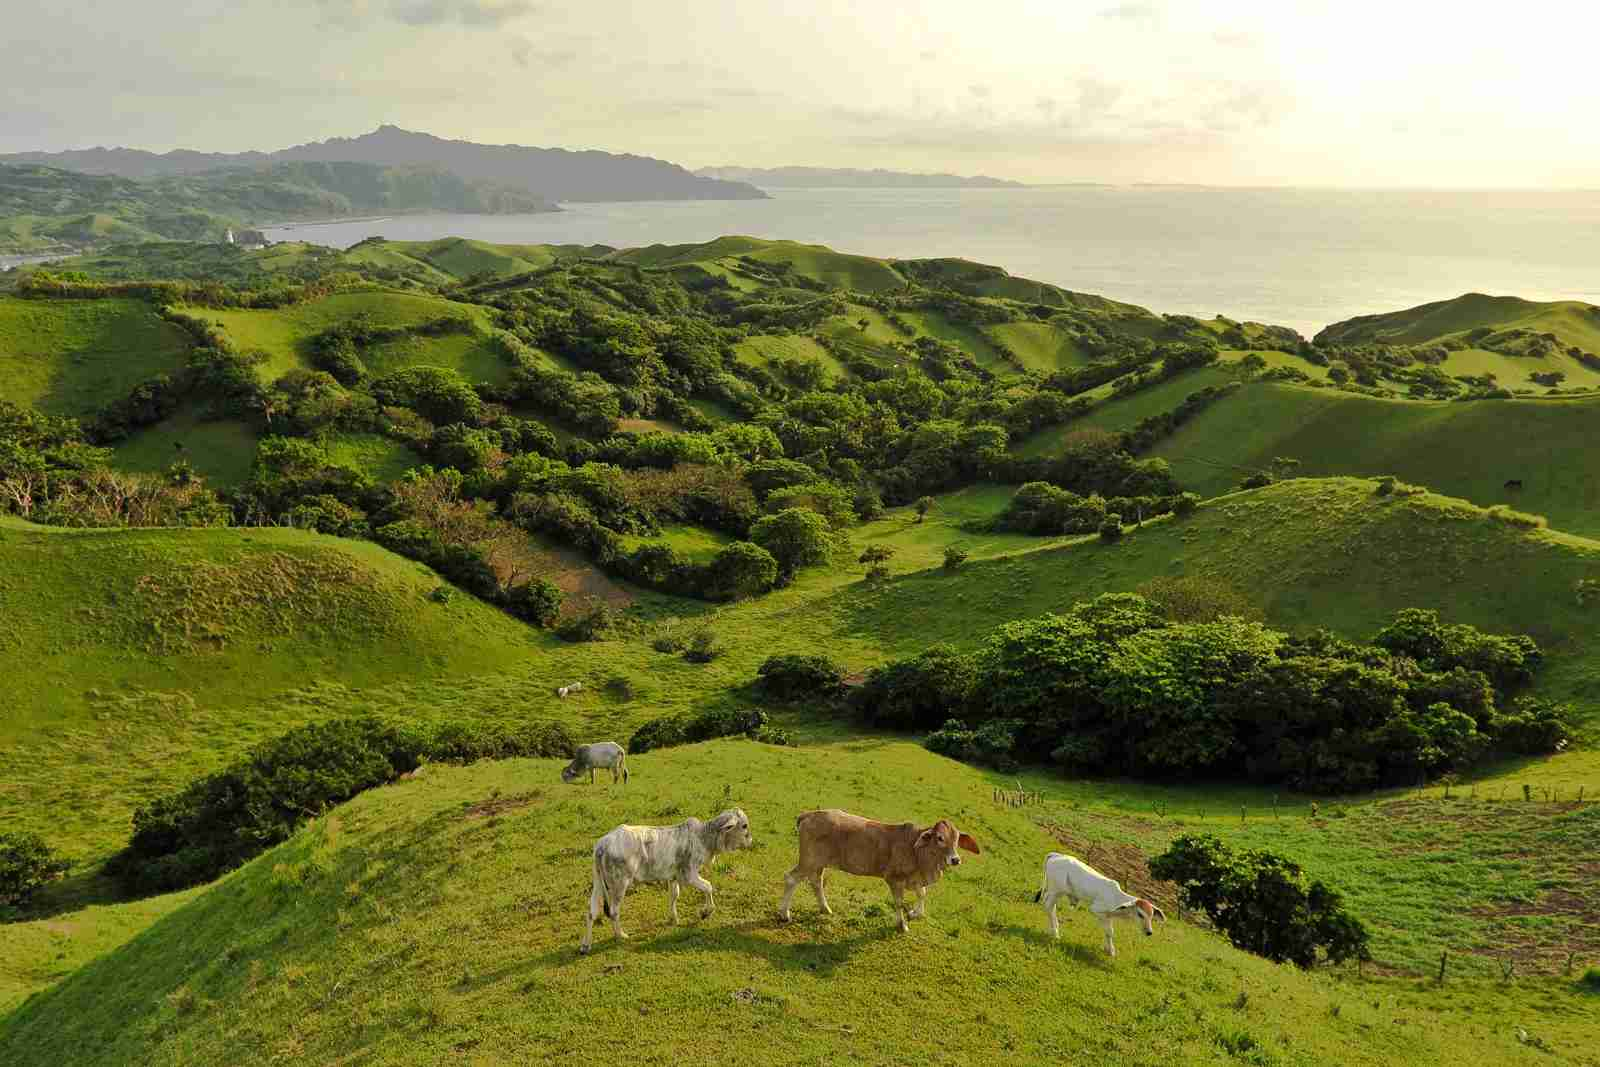 The rolling hills of Batanes. (Photo via Shutterstock)